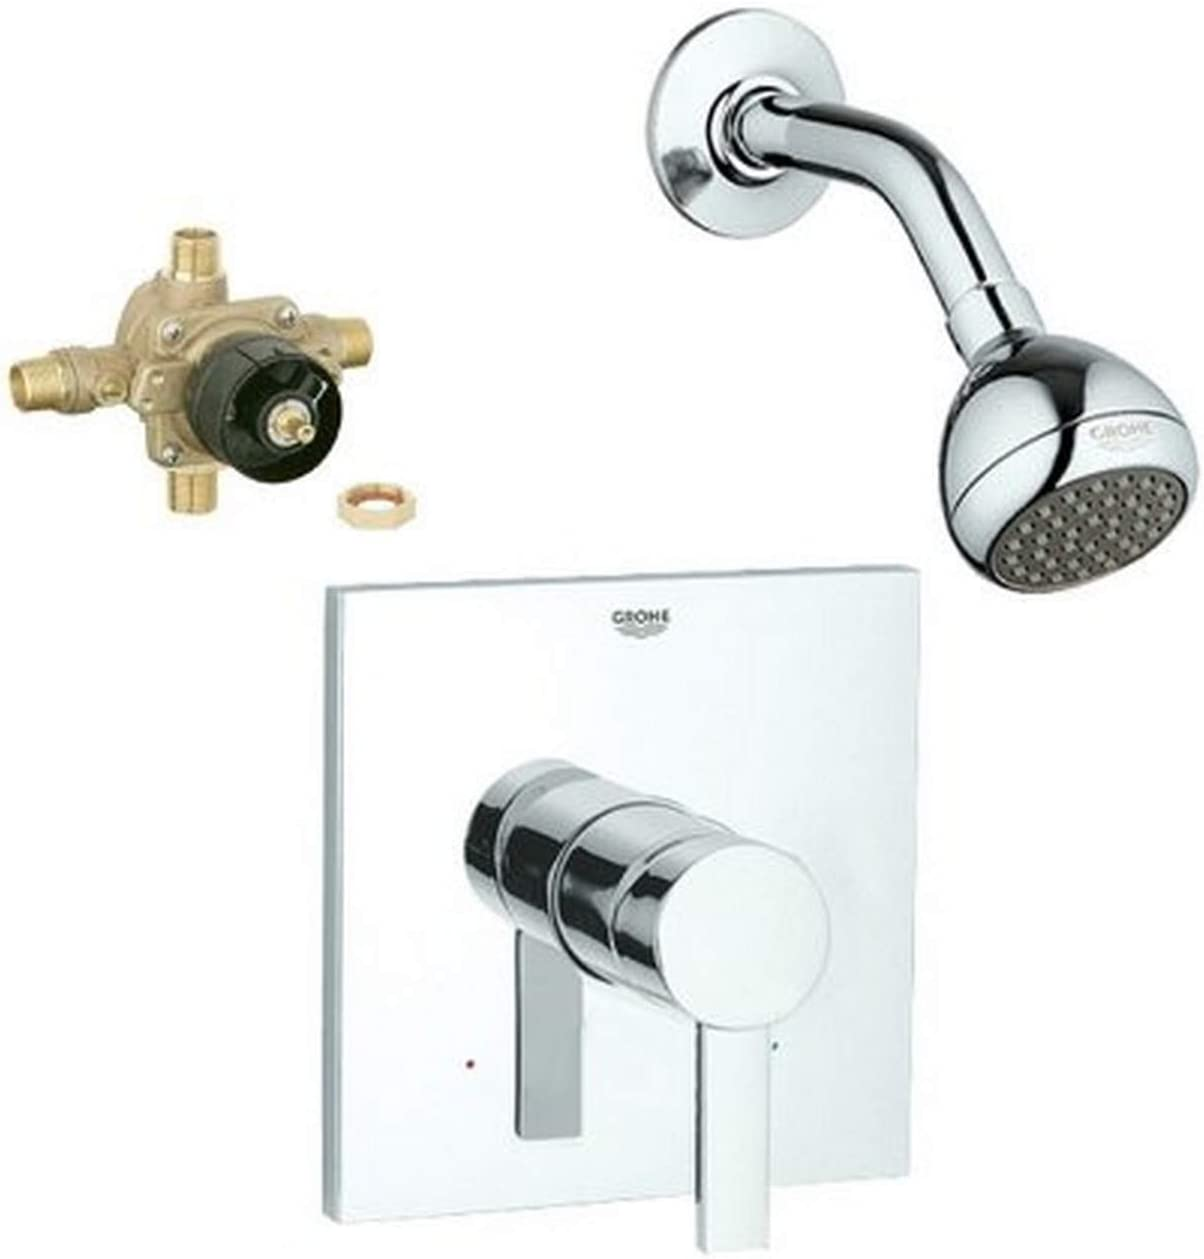 Chrome Grohe KS19375-35015R-000 Allure Shower Valve Kit